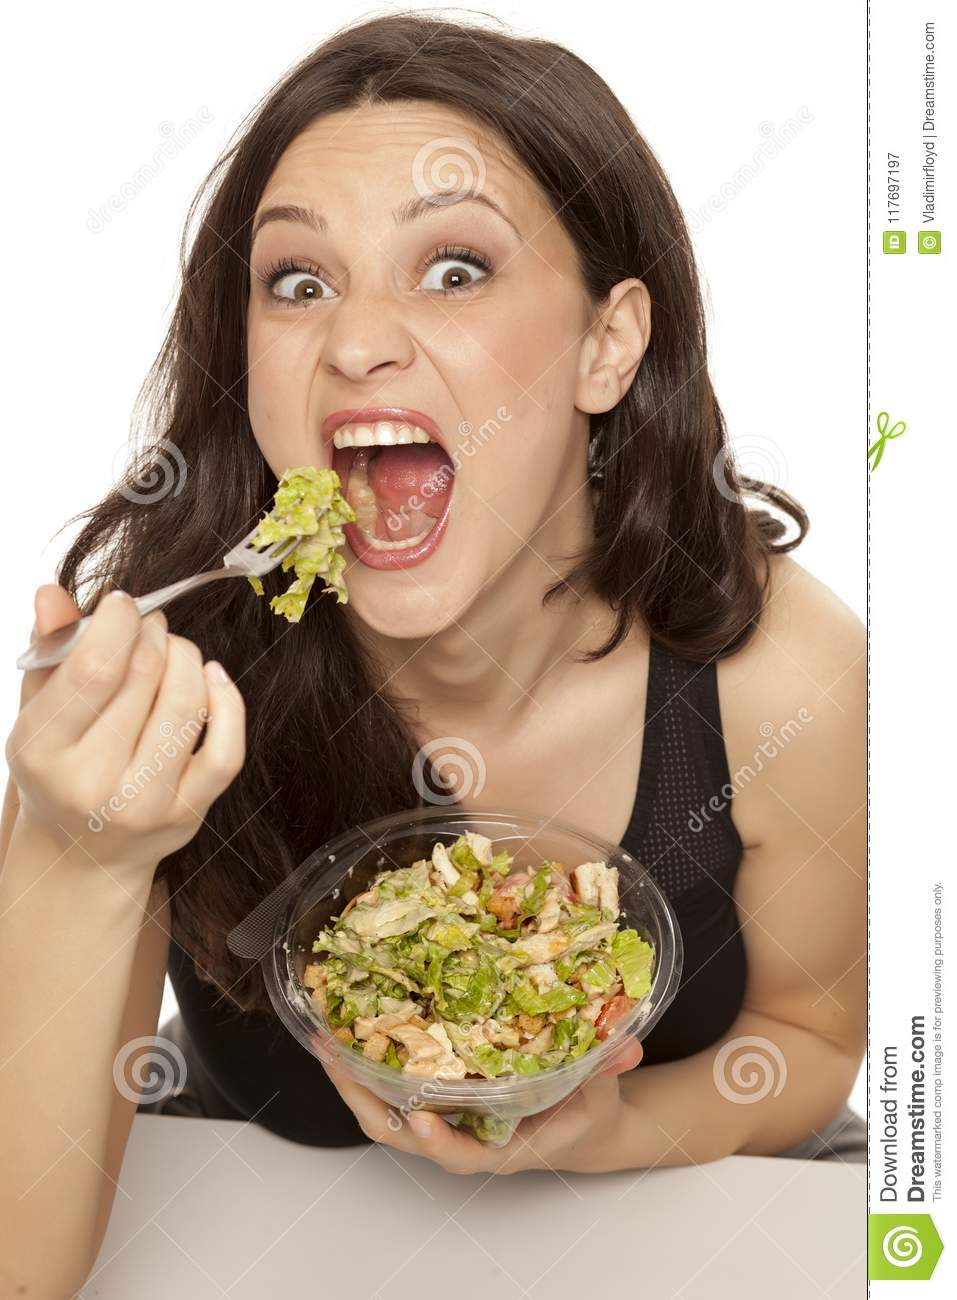 Healthy Food Stock Image Image Of Caucasian Person 117697197